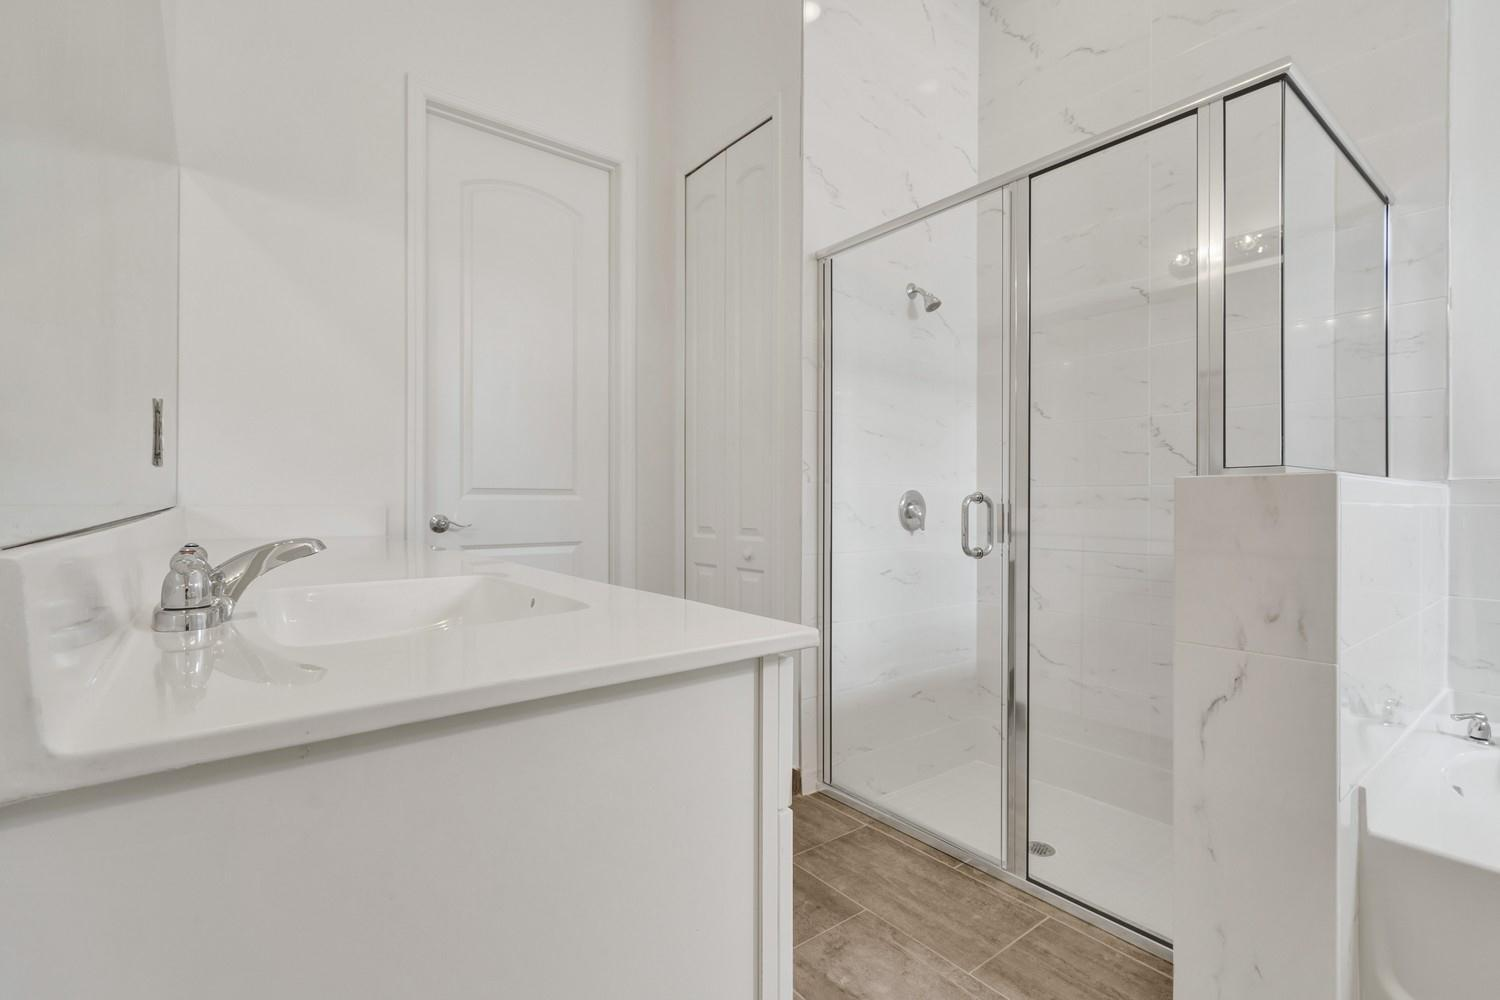 Bathroom featured in the Aria 10XL By Luxcom Builders in Miami-Dade County, FL